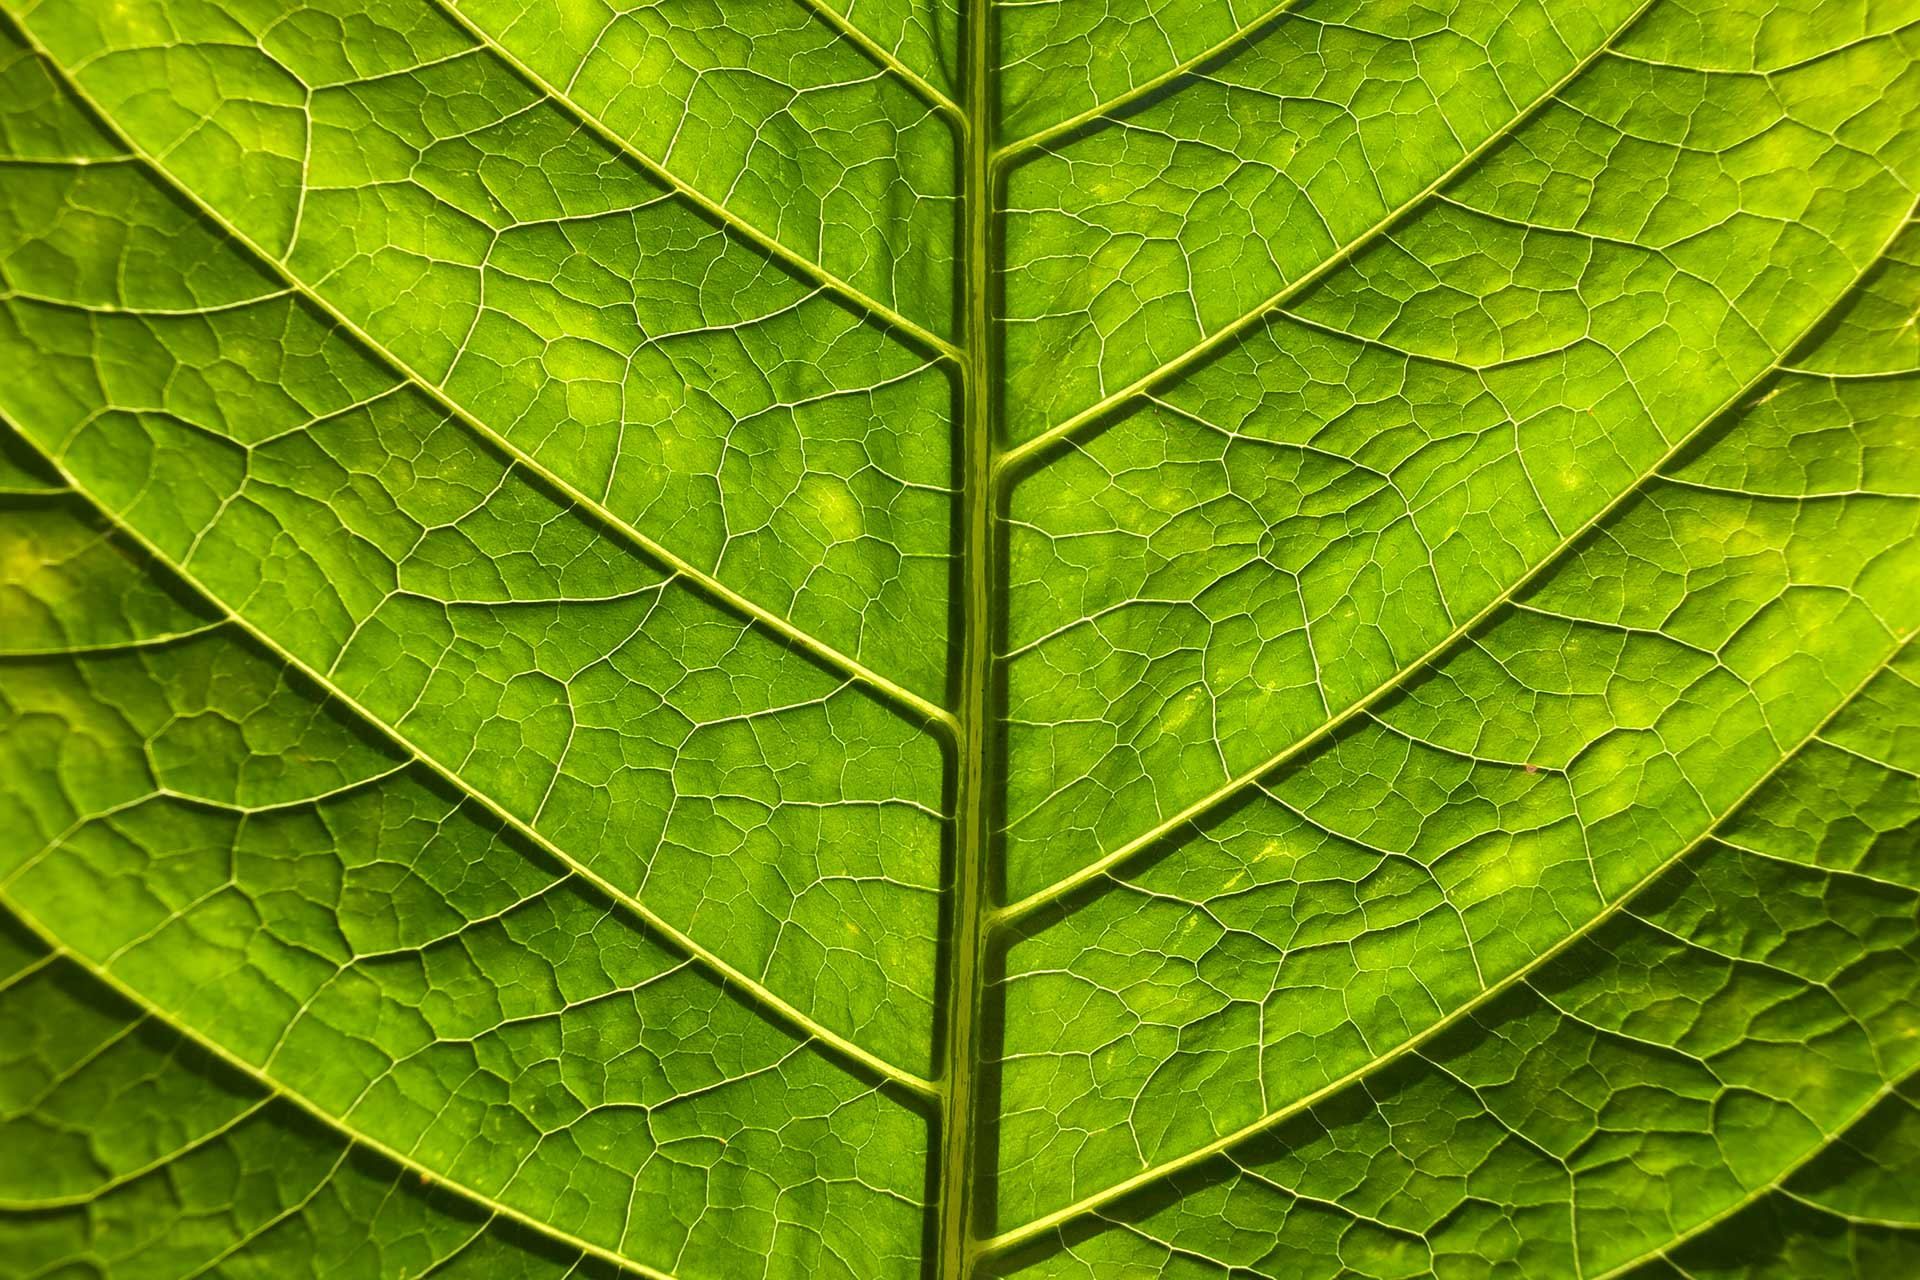 Close up Green Leaf Vein Structure